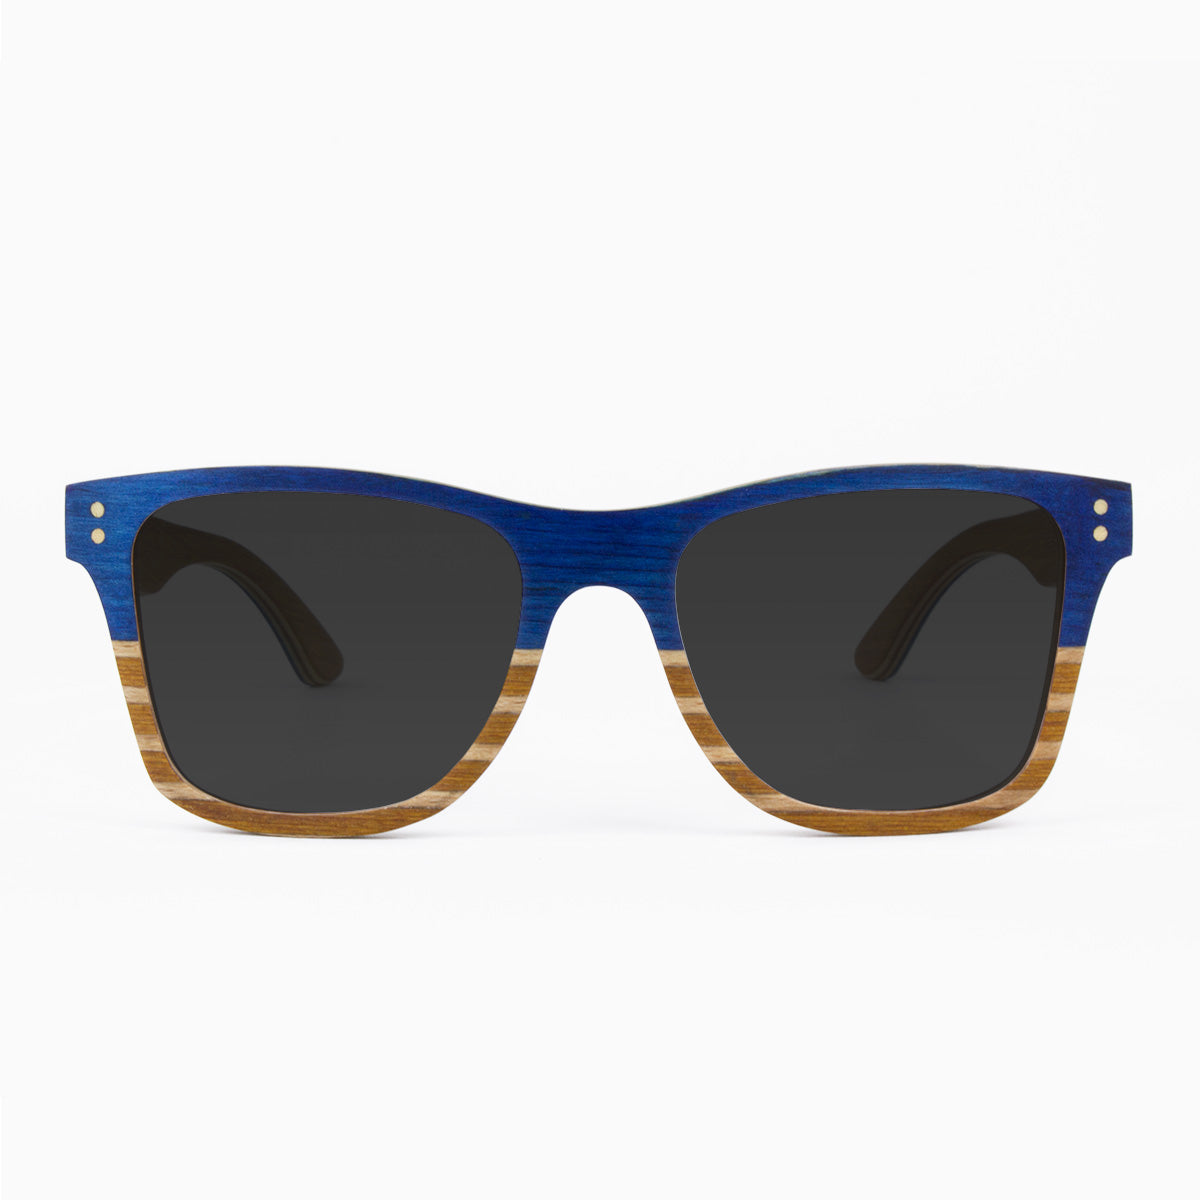 Delray - Maritime Wood Sunglasses